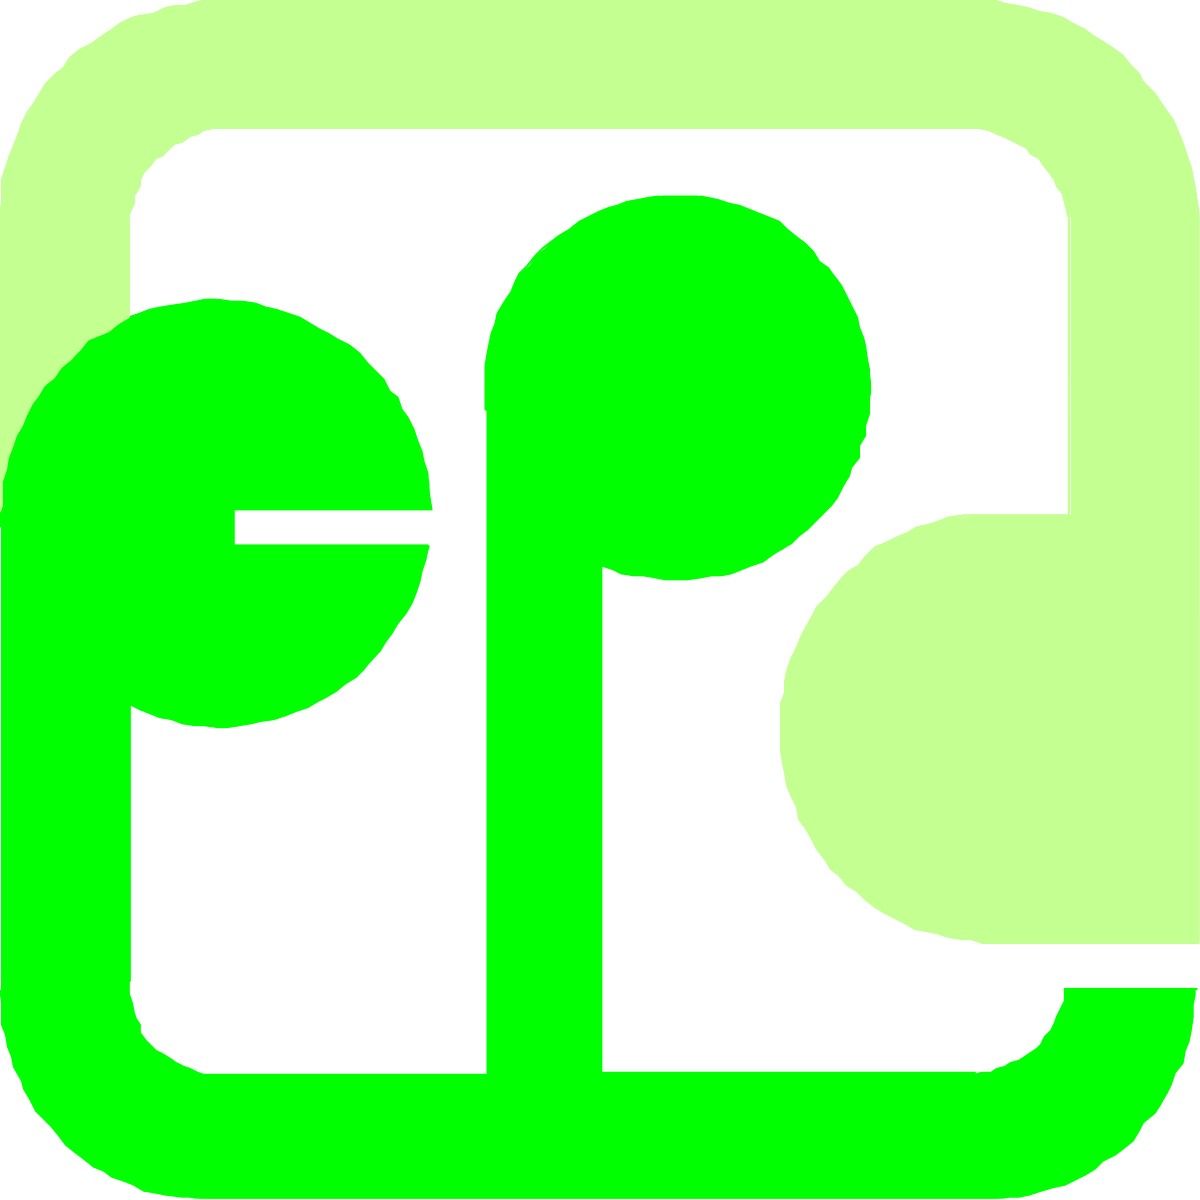 Environment vector background. Environmental protection department wikipedia